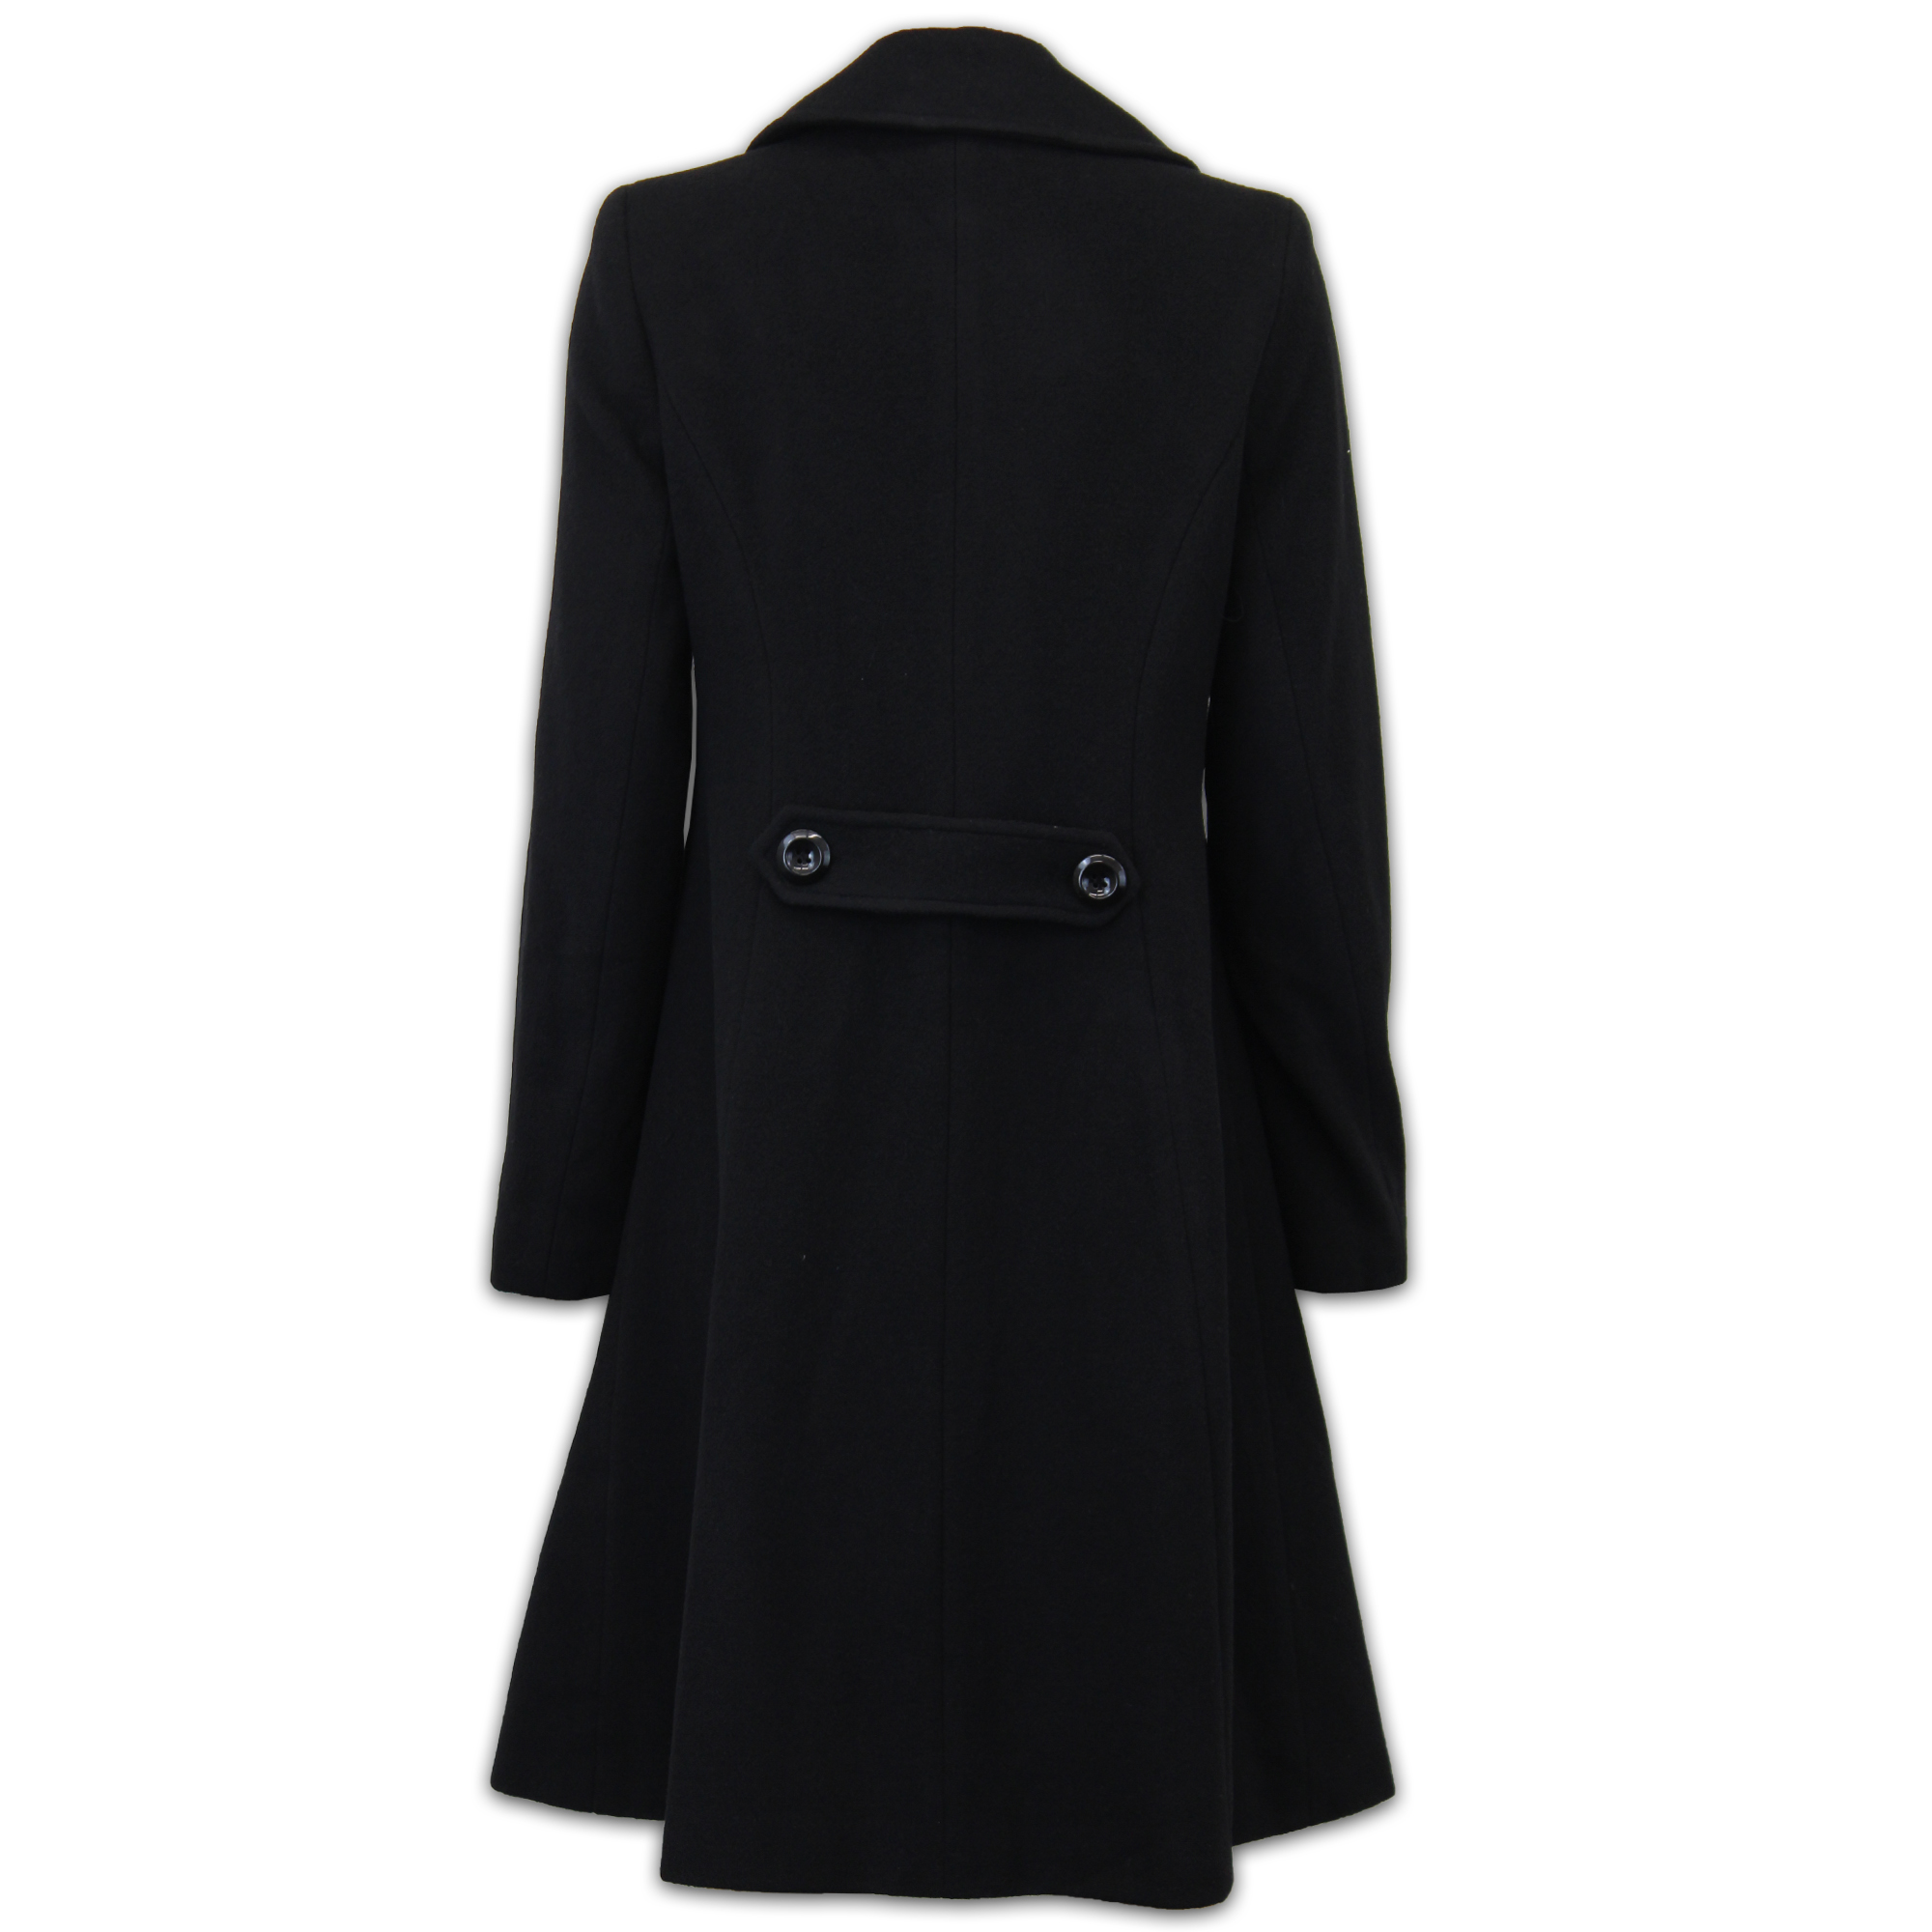 Ladies Wool Cashmere Coat Womens Jacket Outerwear Trench Overcoat ... 2fe23a99b